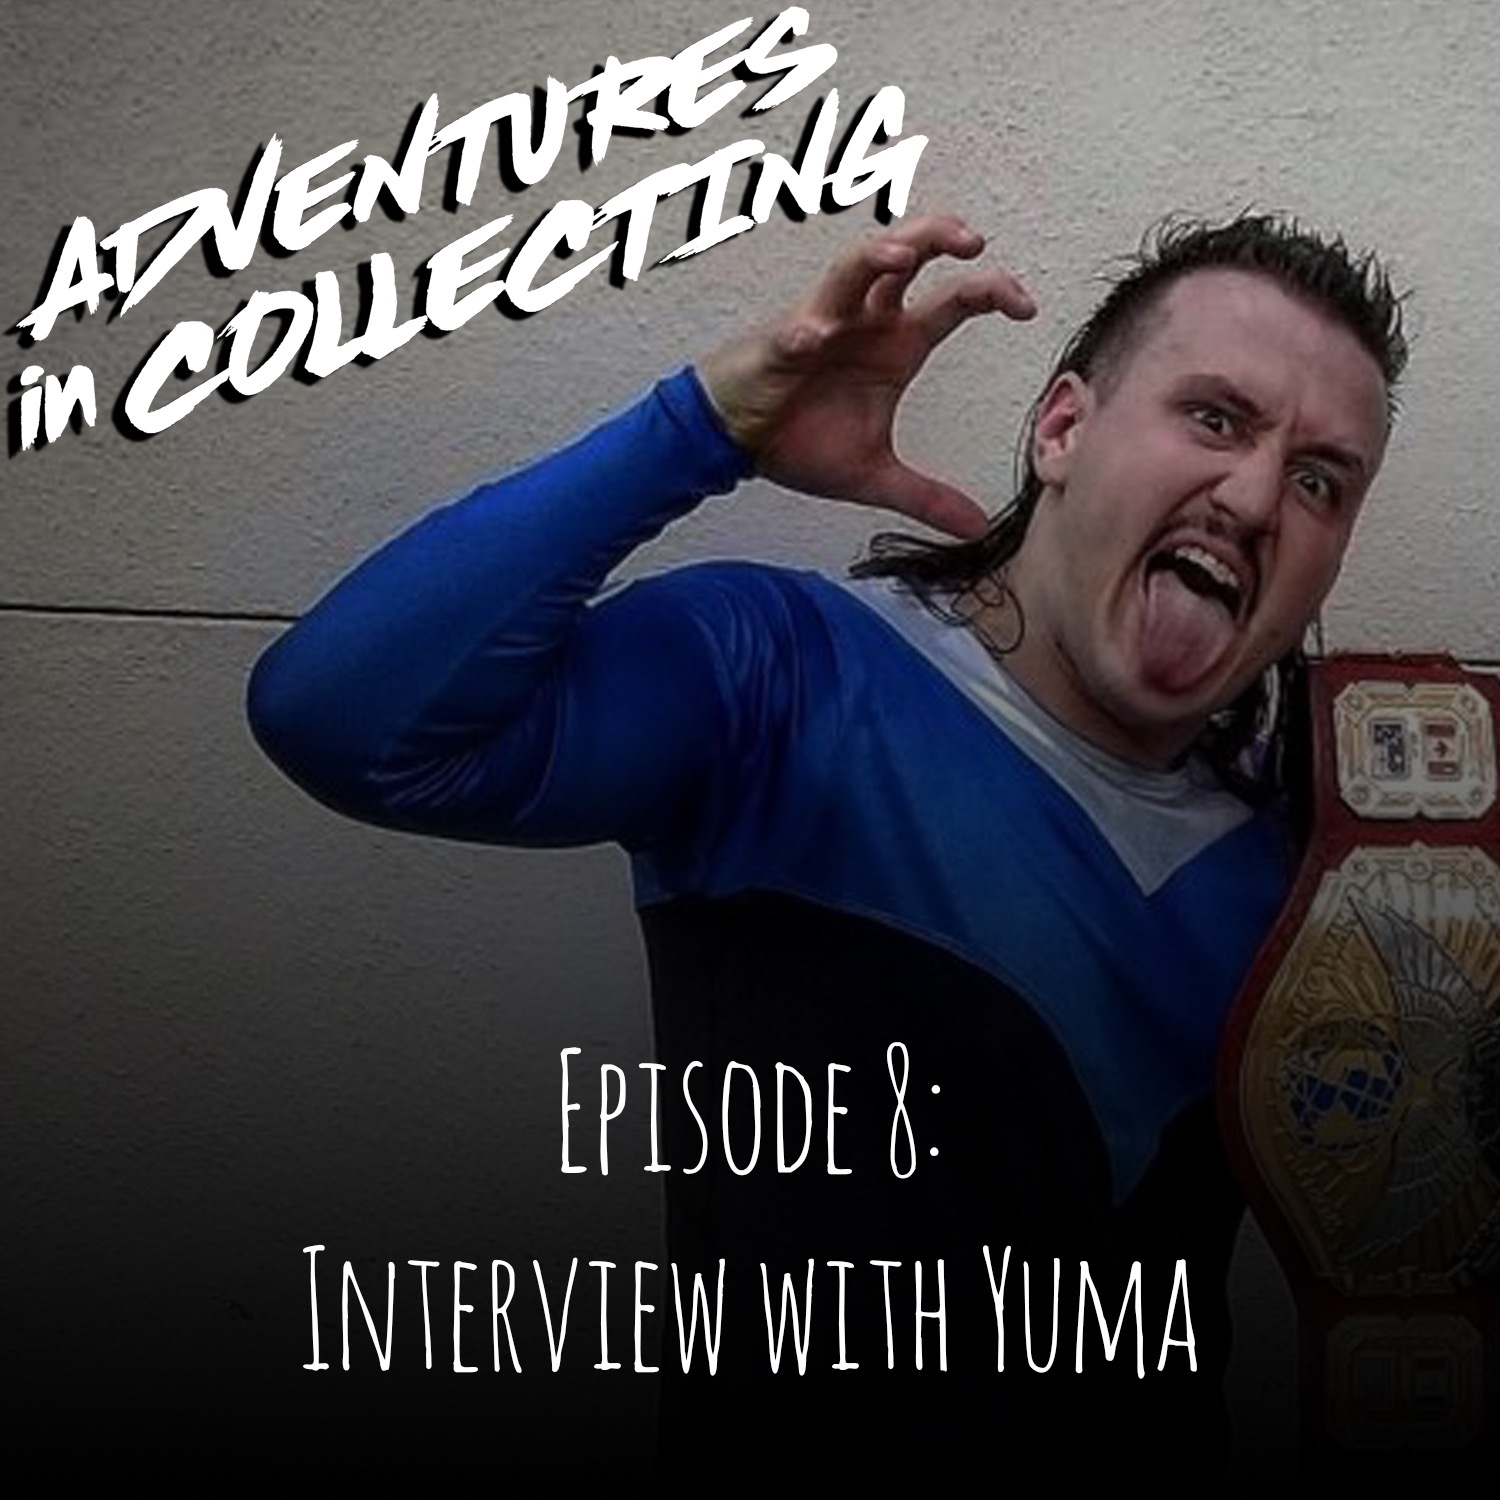 Adventures in Collecting – Wrestling, Star Wars, and Spaceships: An Interview with Yuma